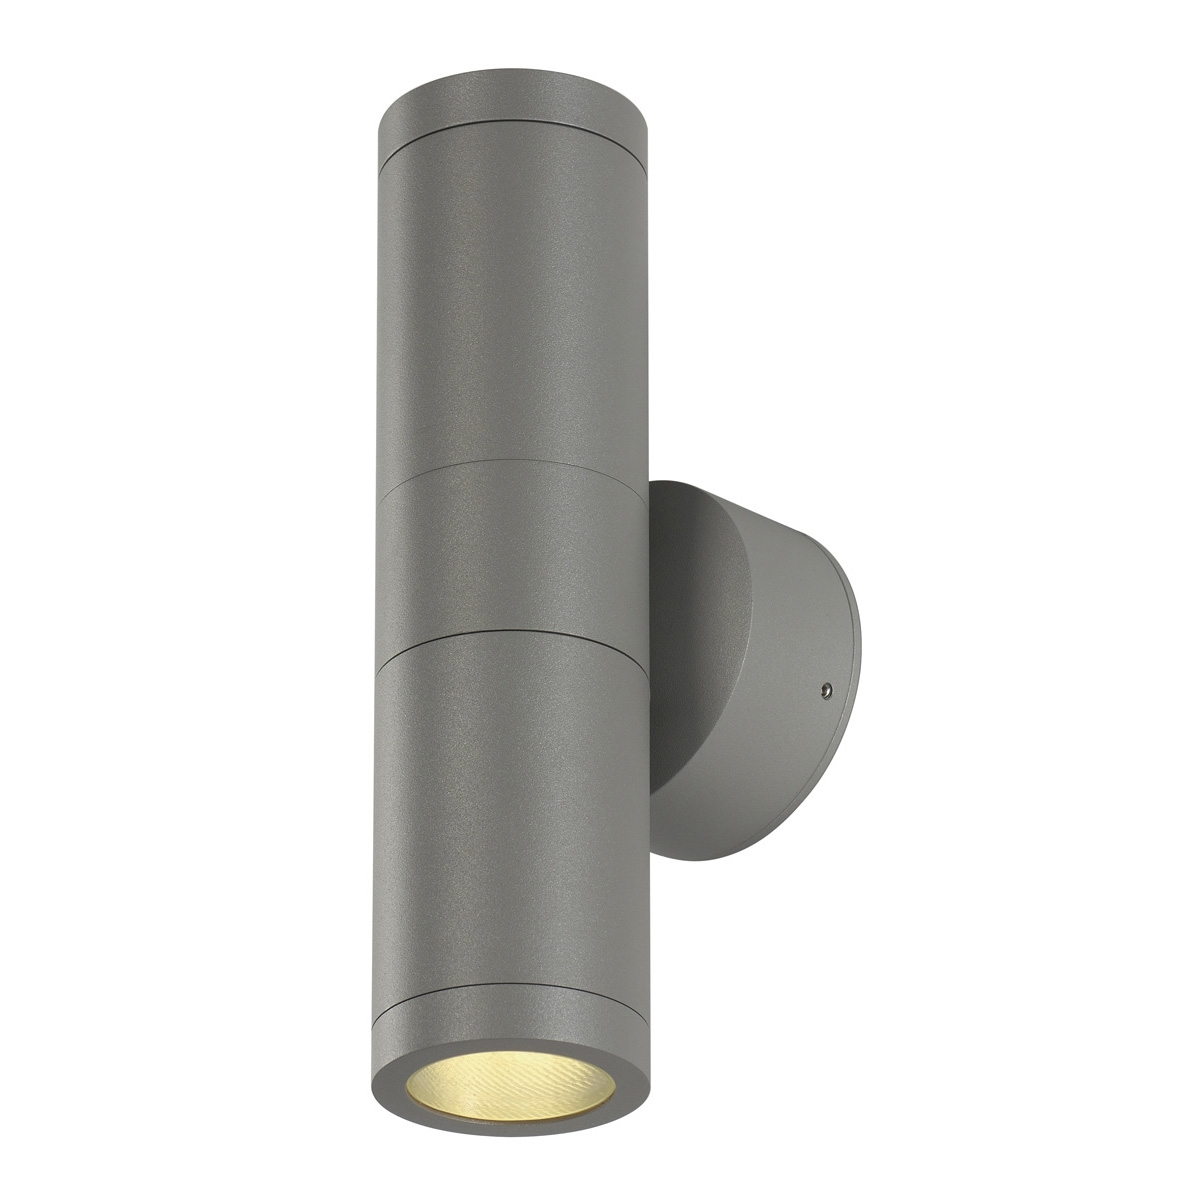 Silver Outdoor Wall Lights With Current Astina, Outdoor Wall Light, Tcr50 Se, Ip44, Round, Up/down, Silver (View 16 of 20)